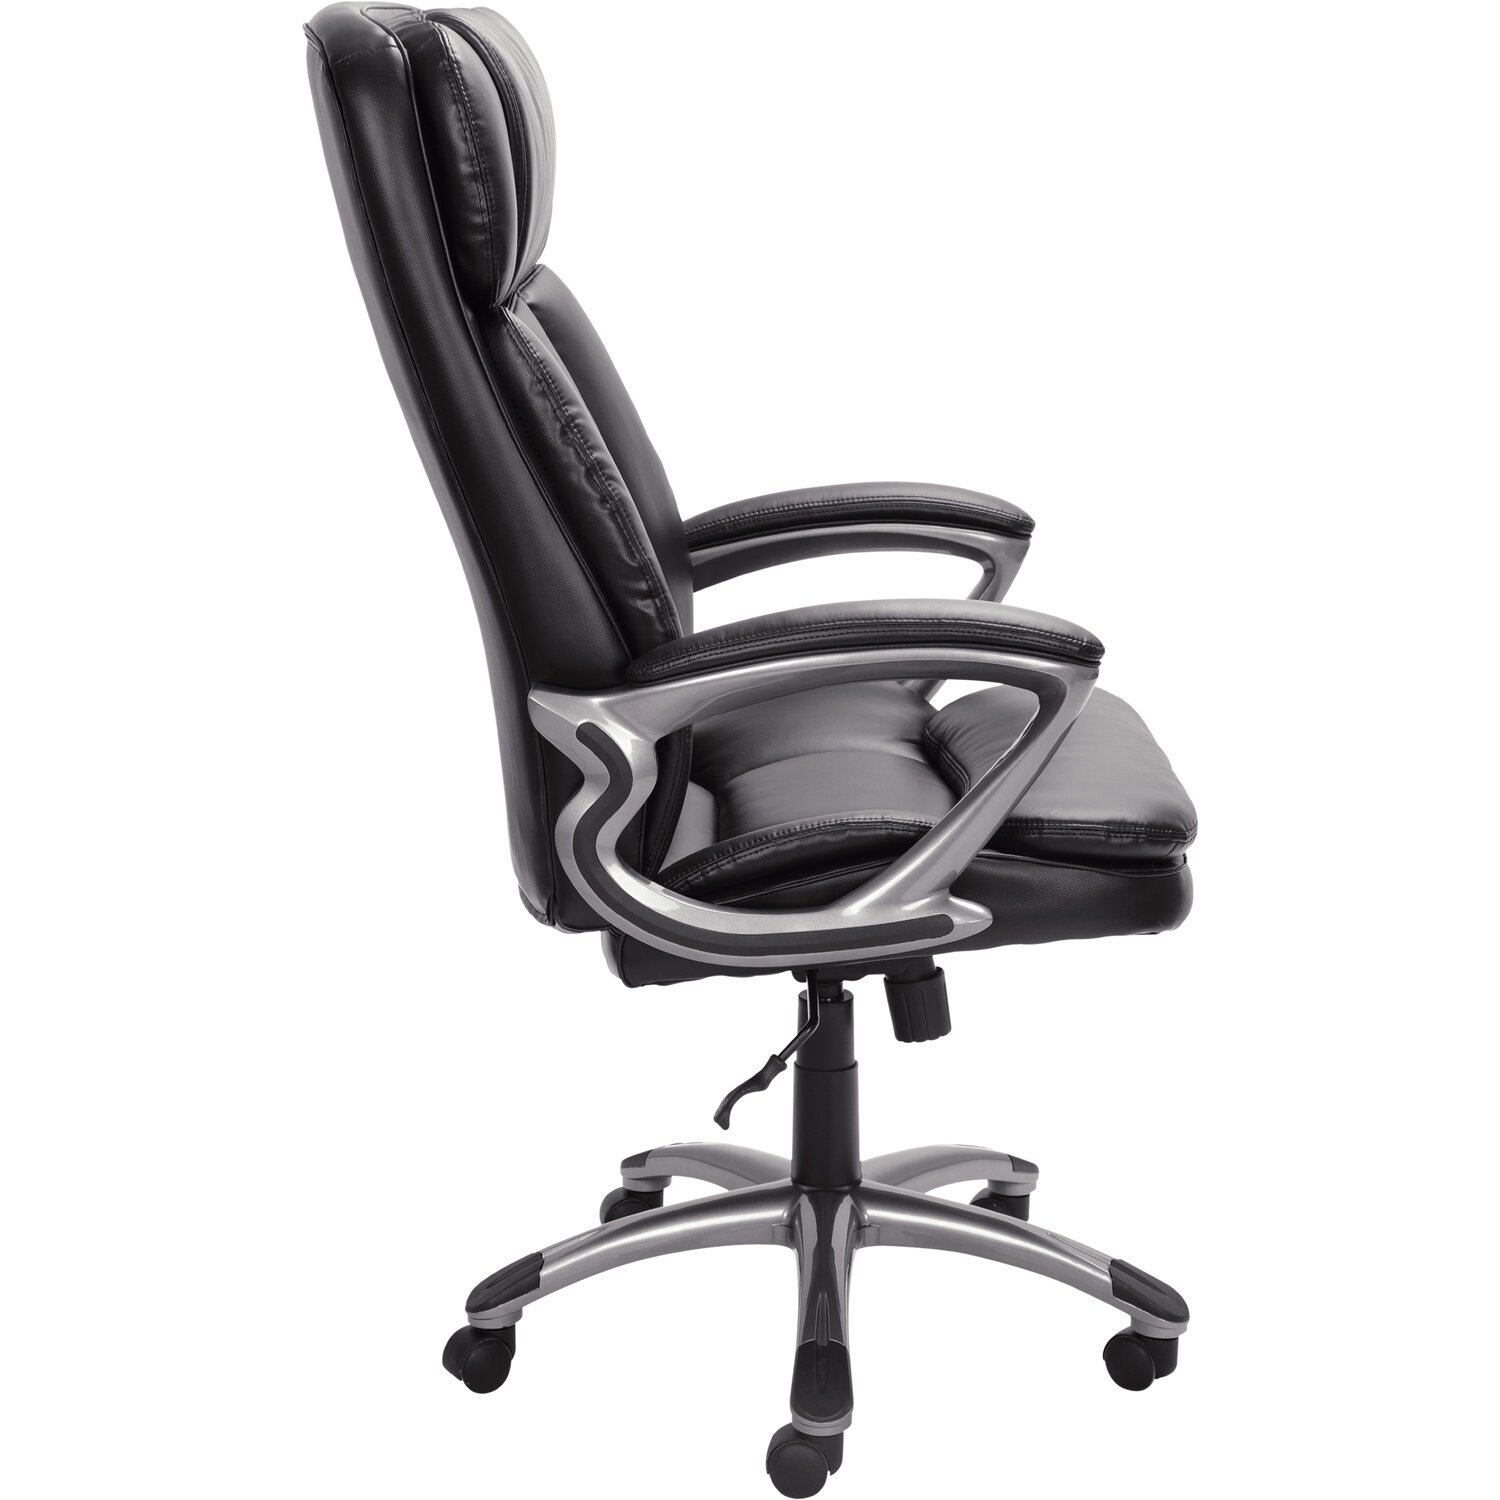 Serta Big And Tall Smart Layers Serenity Executive fice Chair